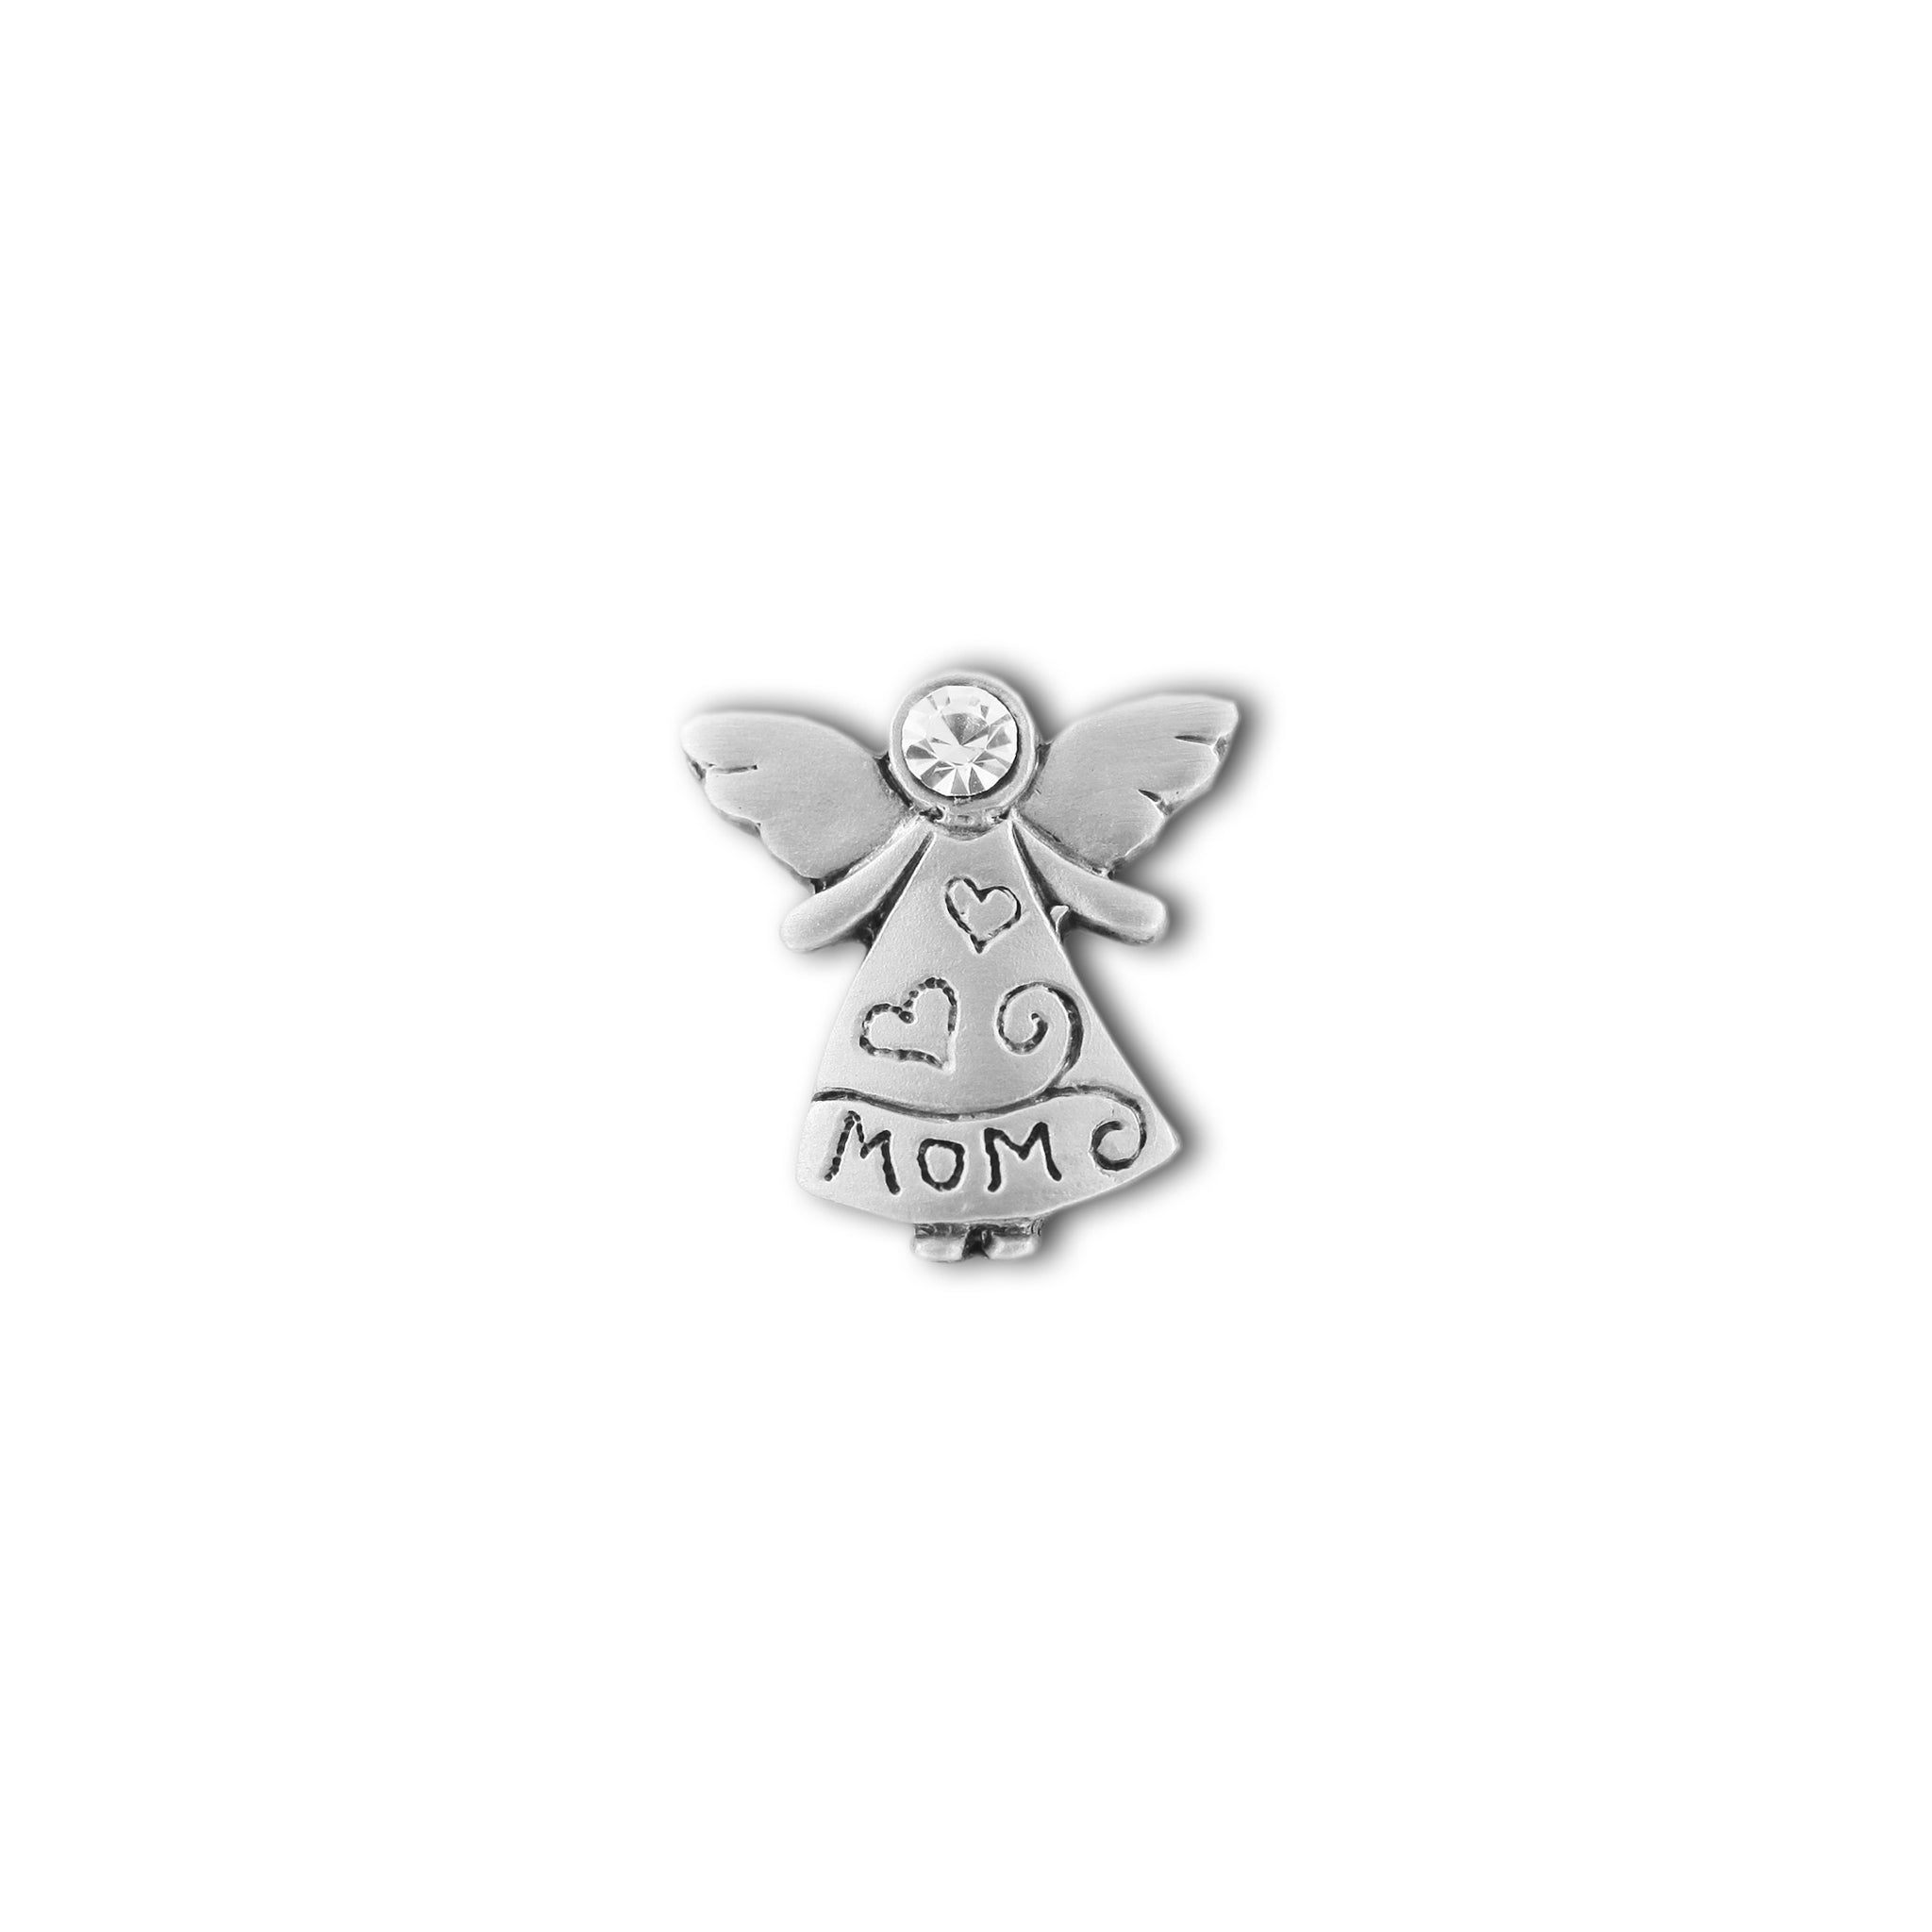 Angel Mom with Crystal Head pewter pin